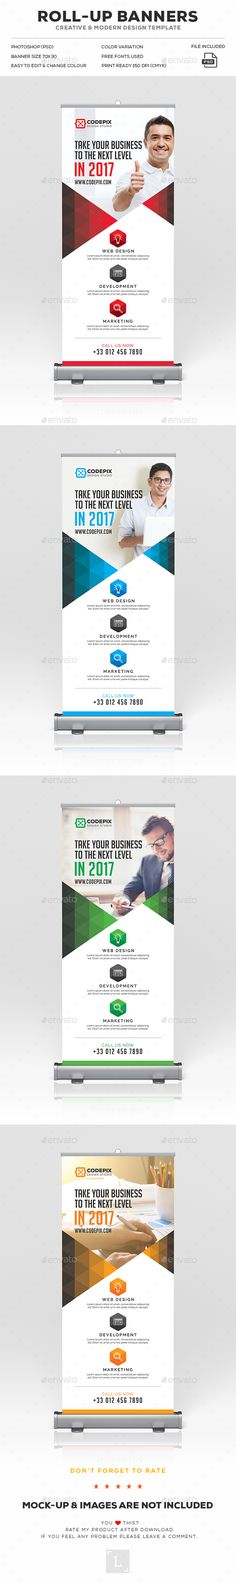 Corporate Roll-Up Banner Template PSD. Download here: https://graphicriver.net/item/corporate-rollup-banner/17474584?ref=ksioks